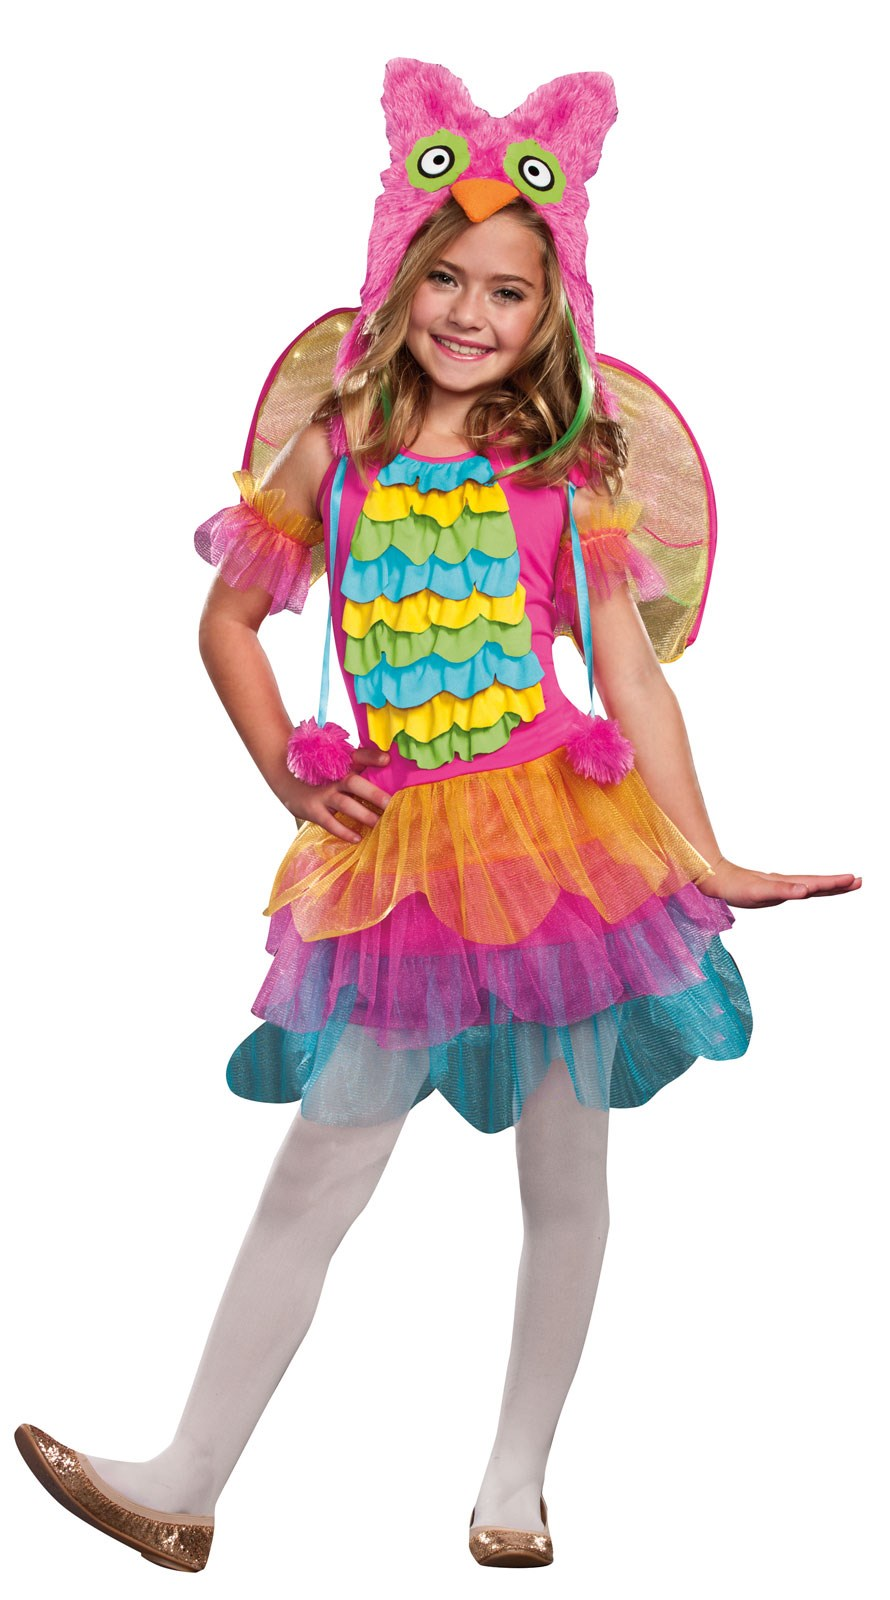 Precious Lil Owl Costume for Kids